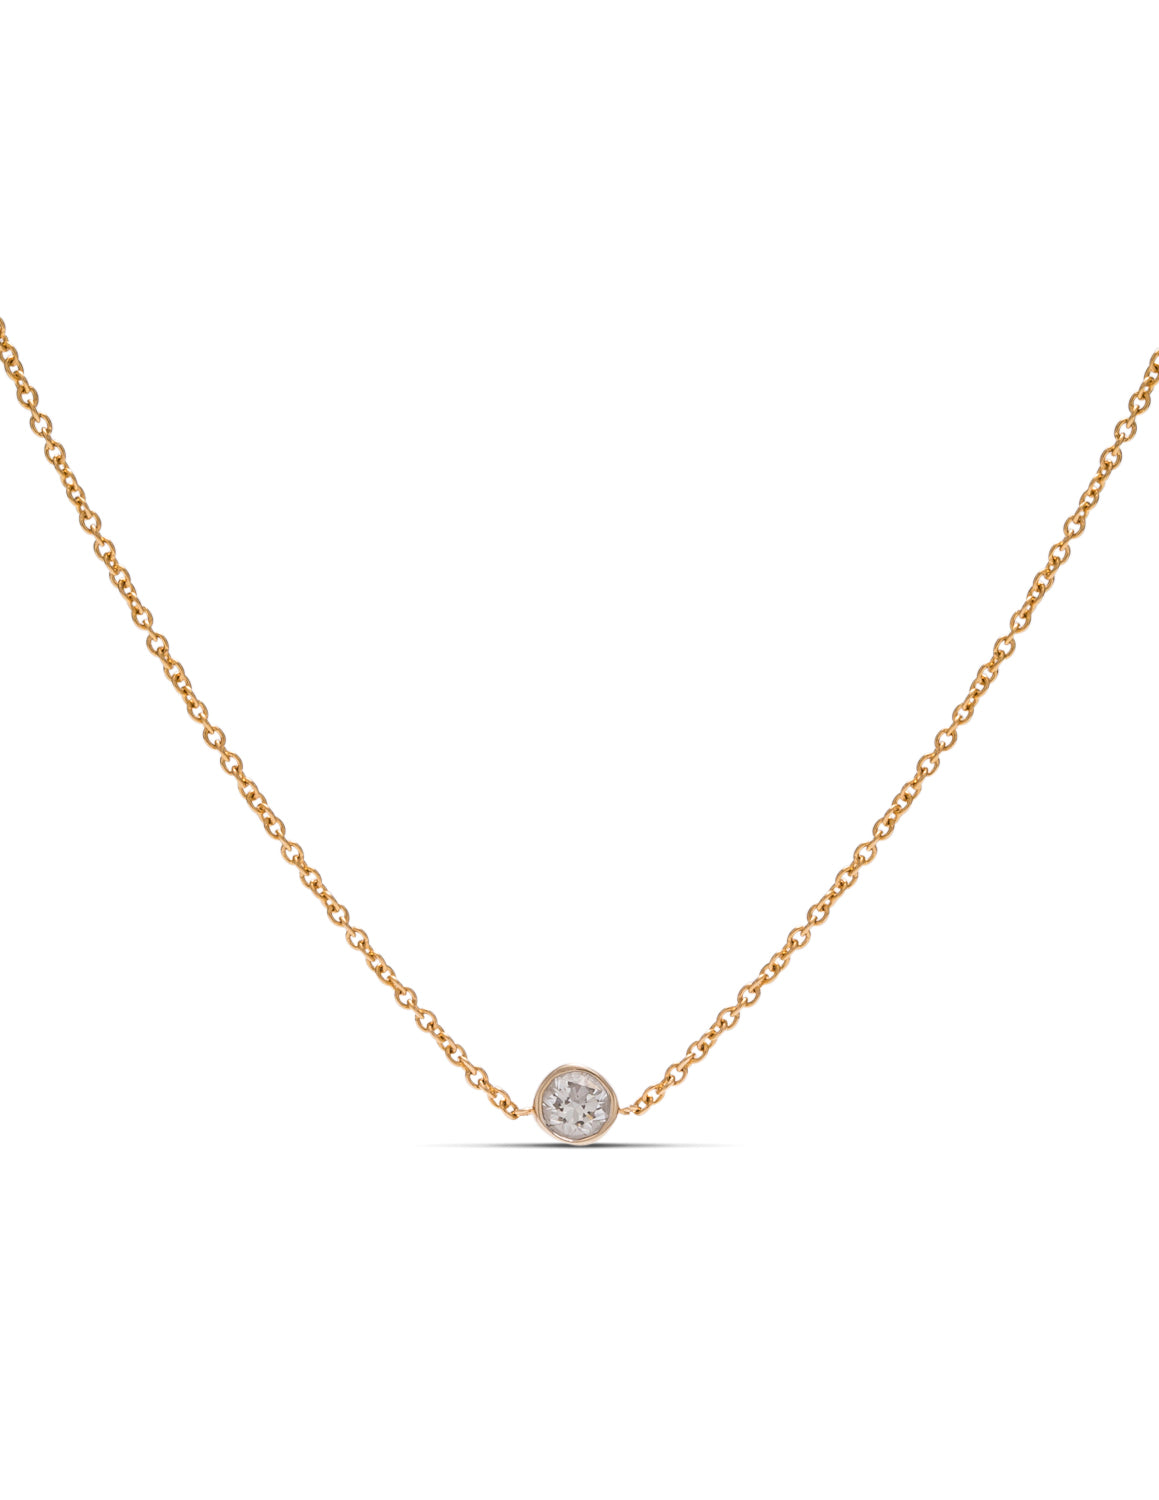 Bezel Set Diamond Solitaire Necklace - Charles Koll Jewellers